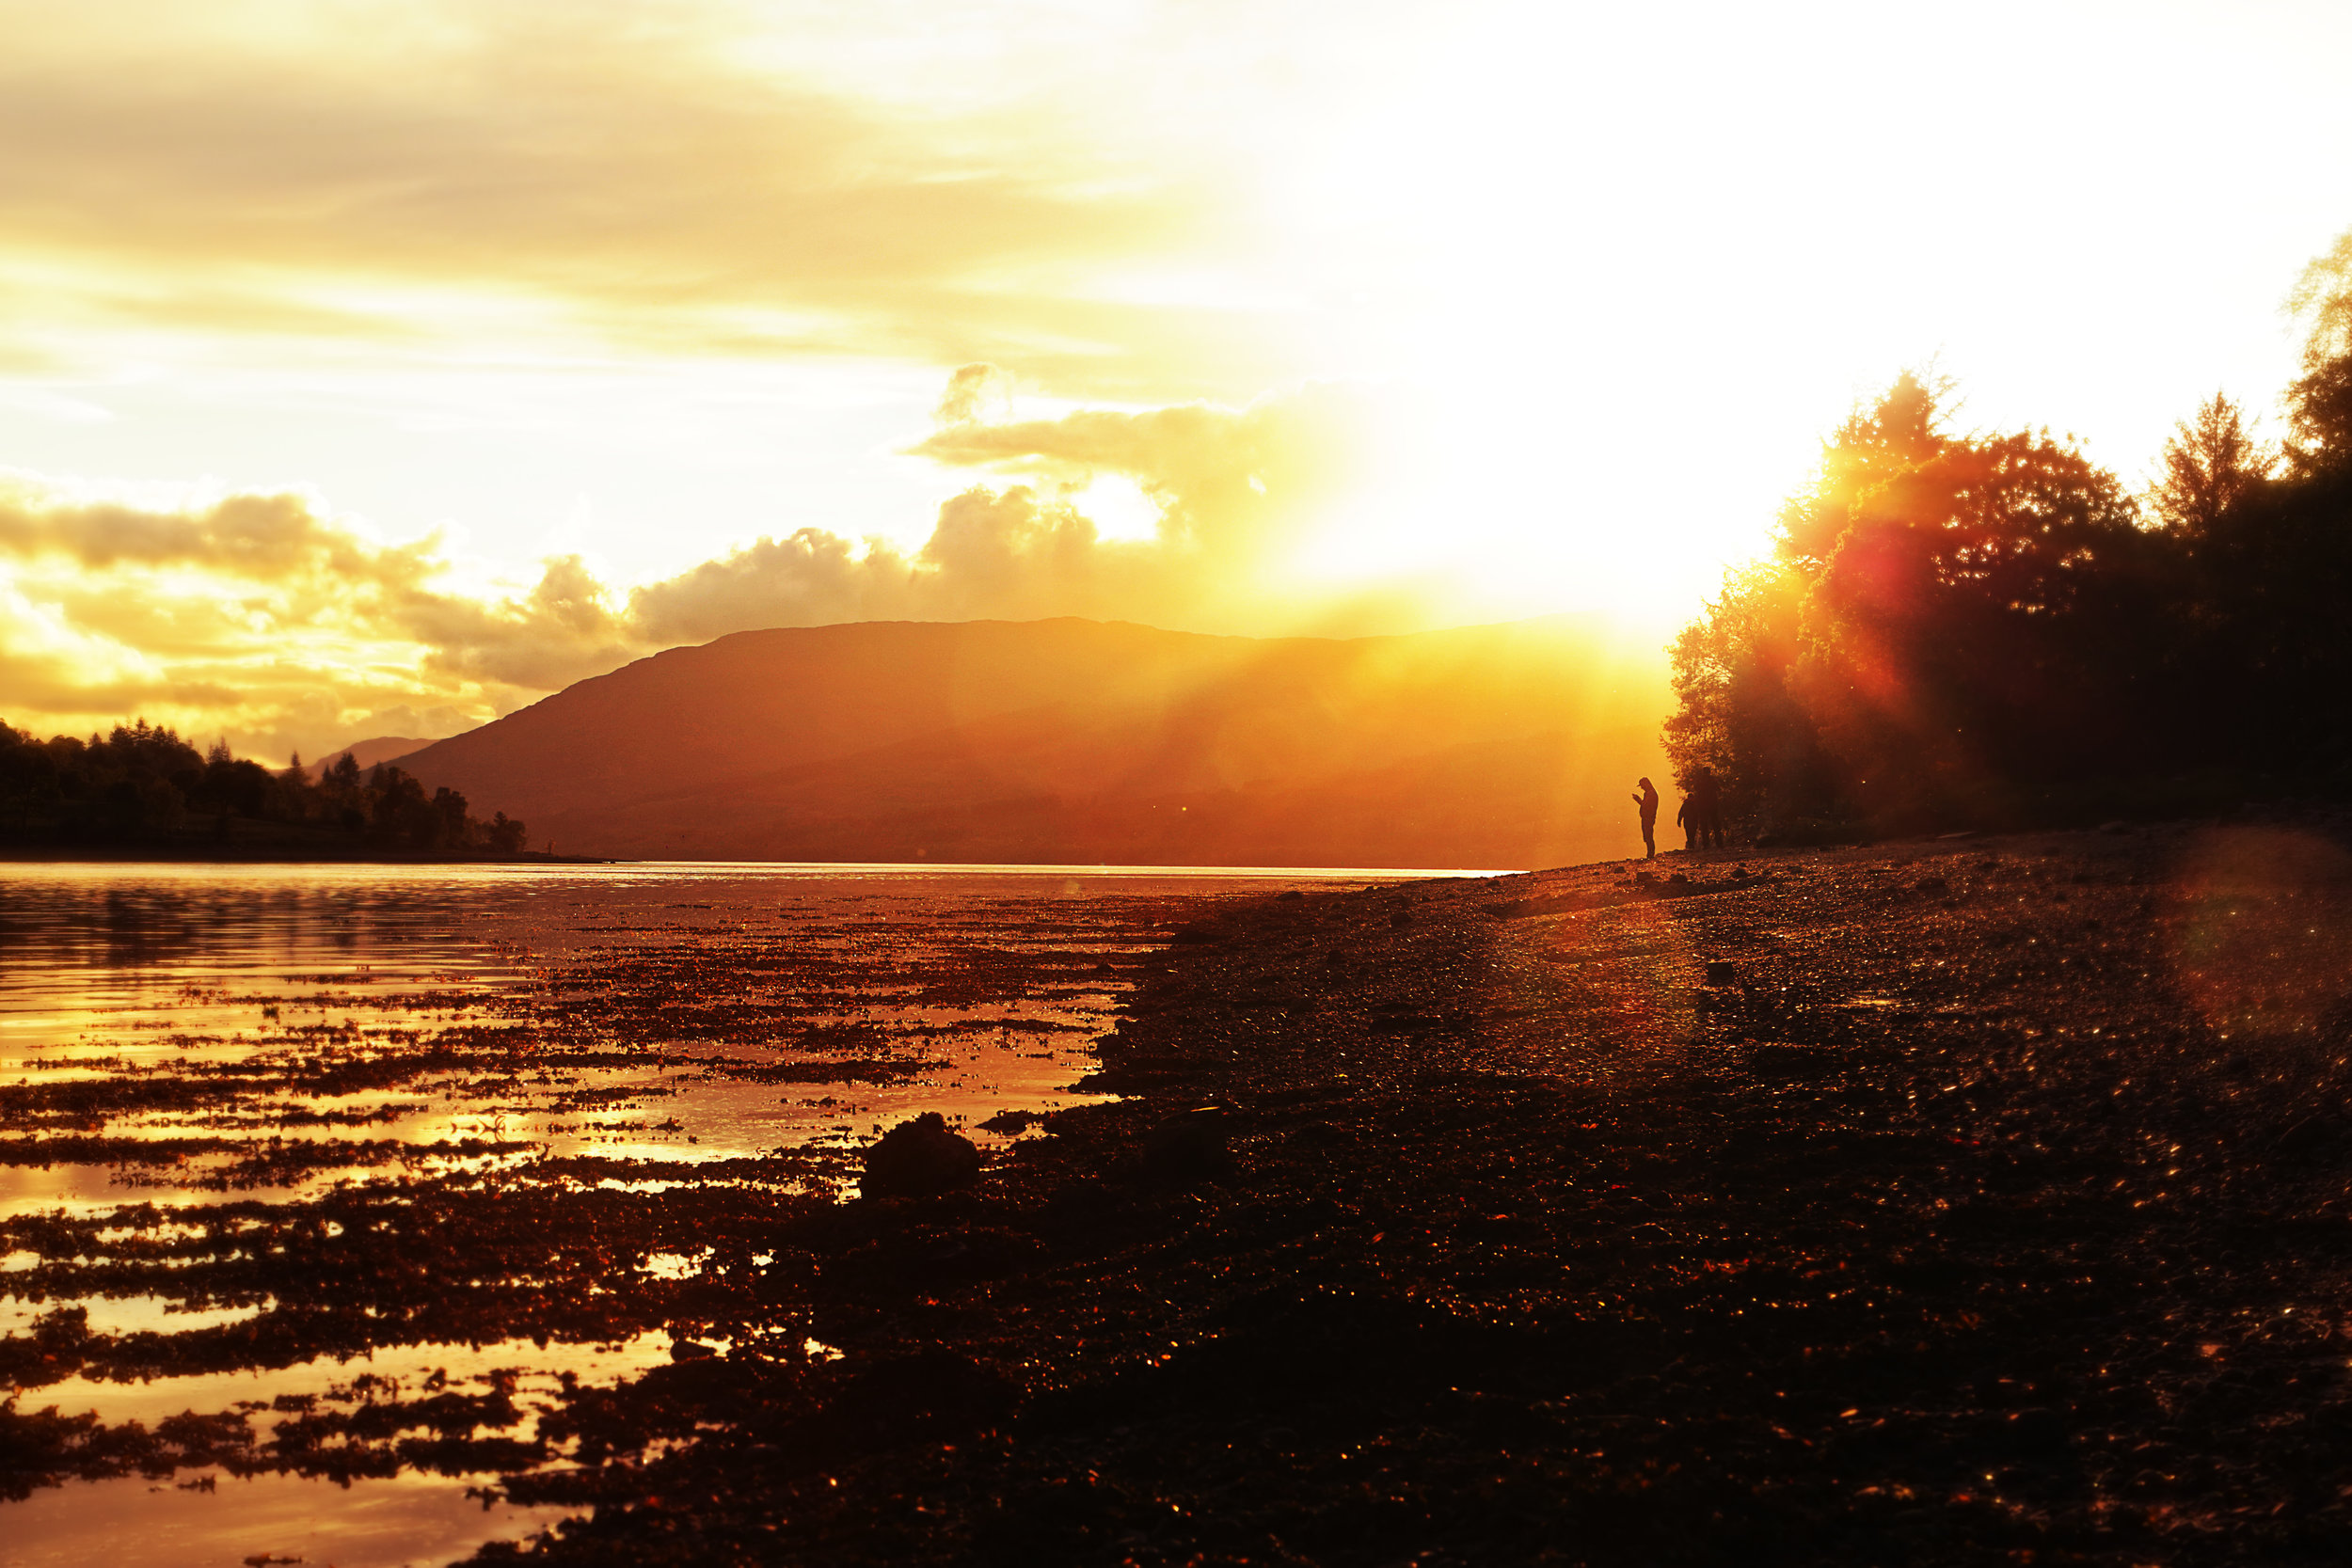 Sunset Loche - Full Res.jpg